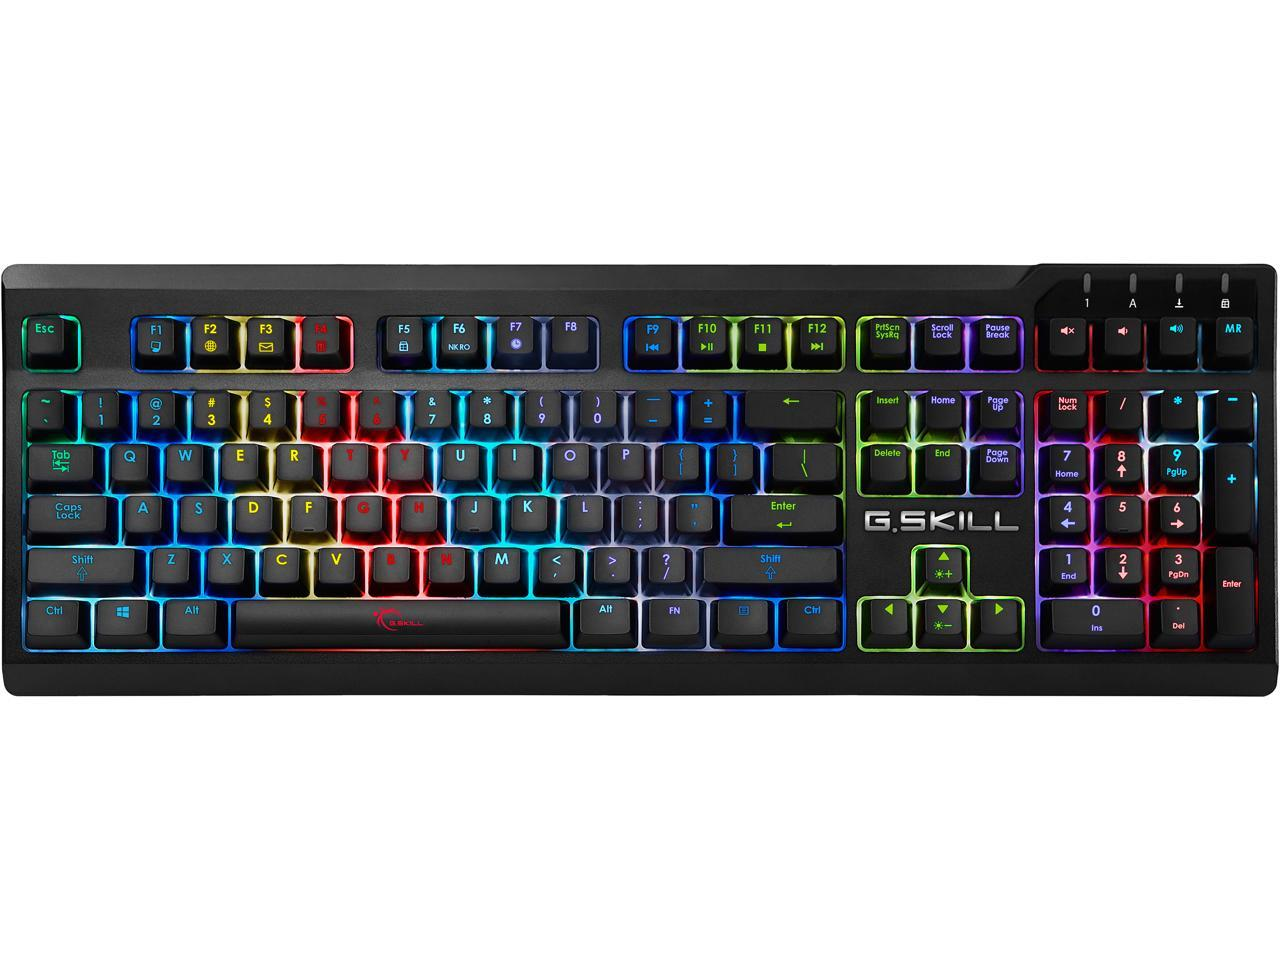 G. Skill Ripjaws USB Gaming Mechanical Keyboard